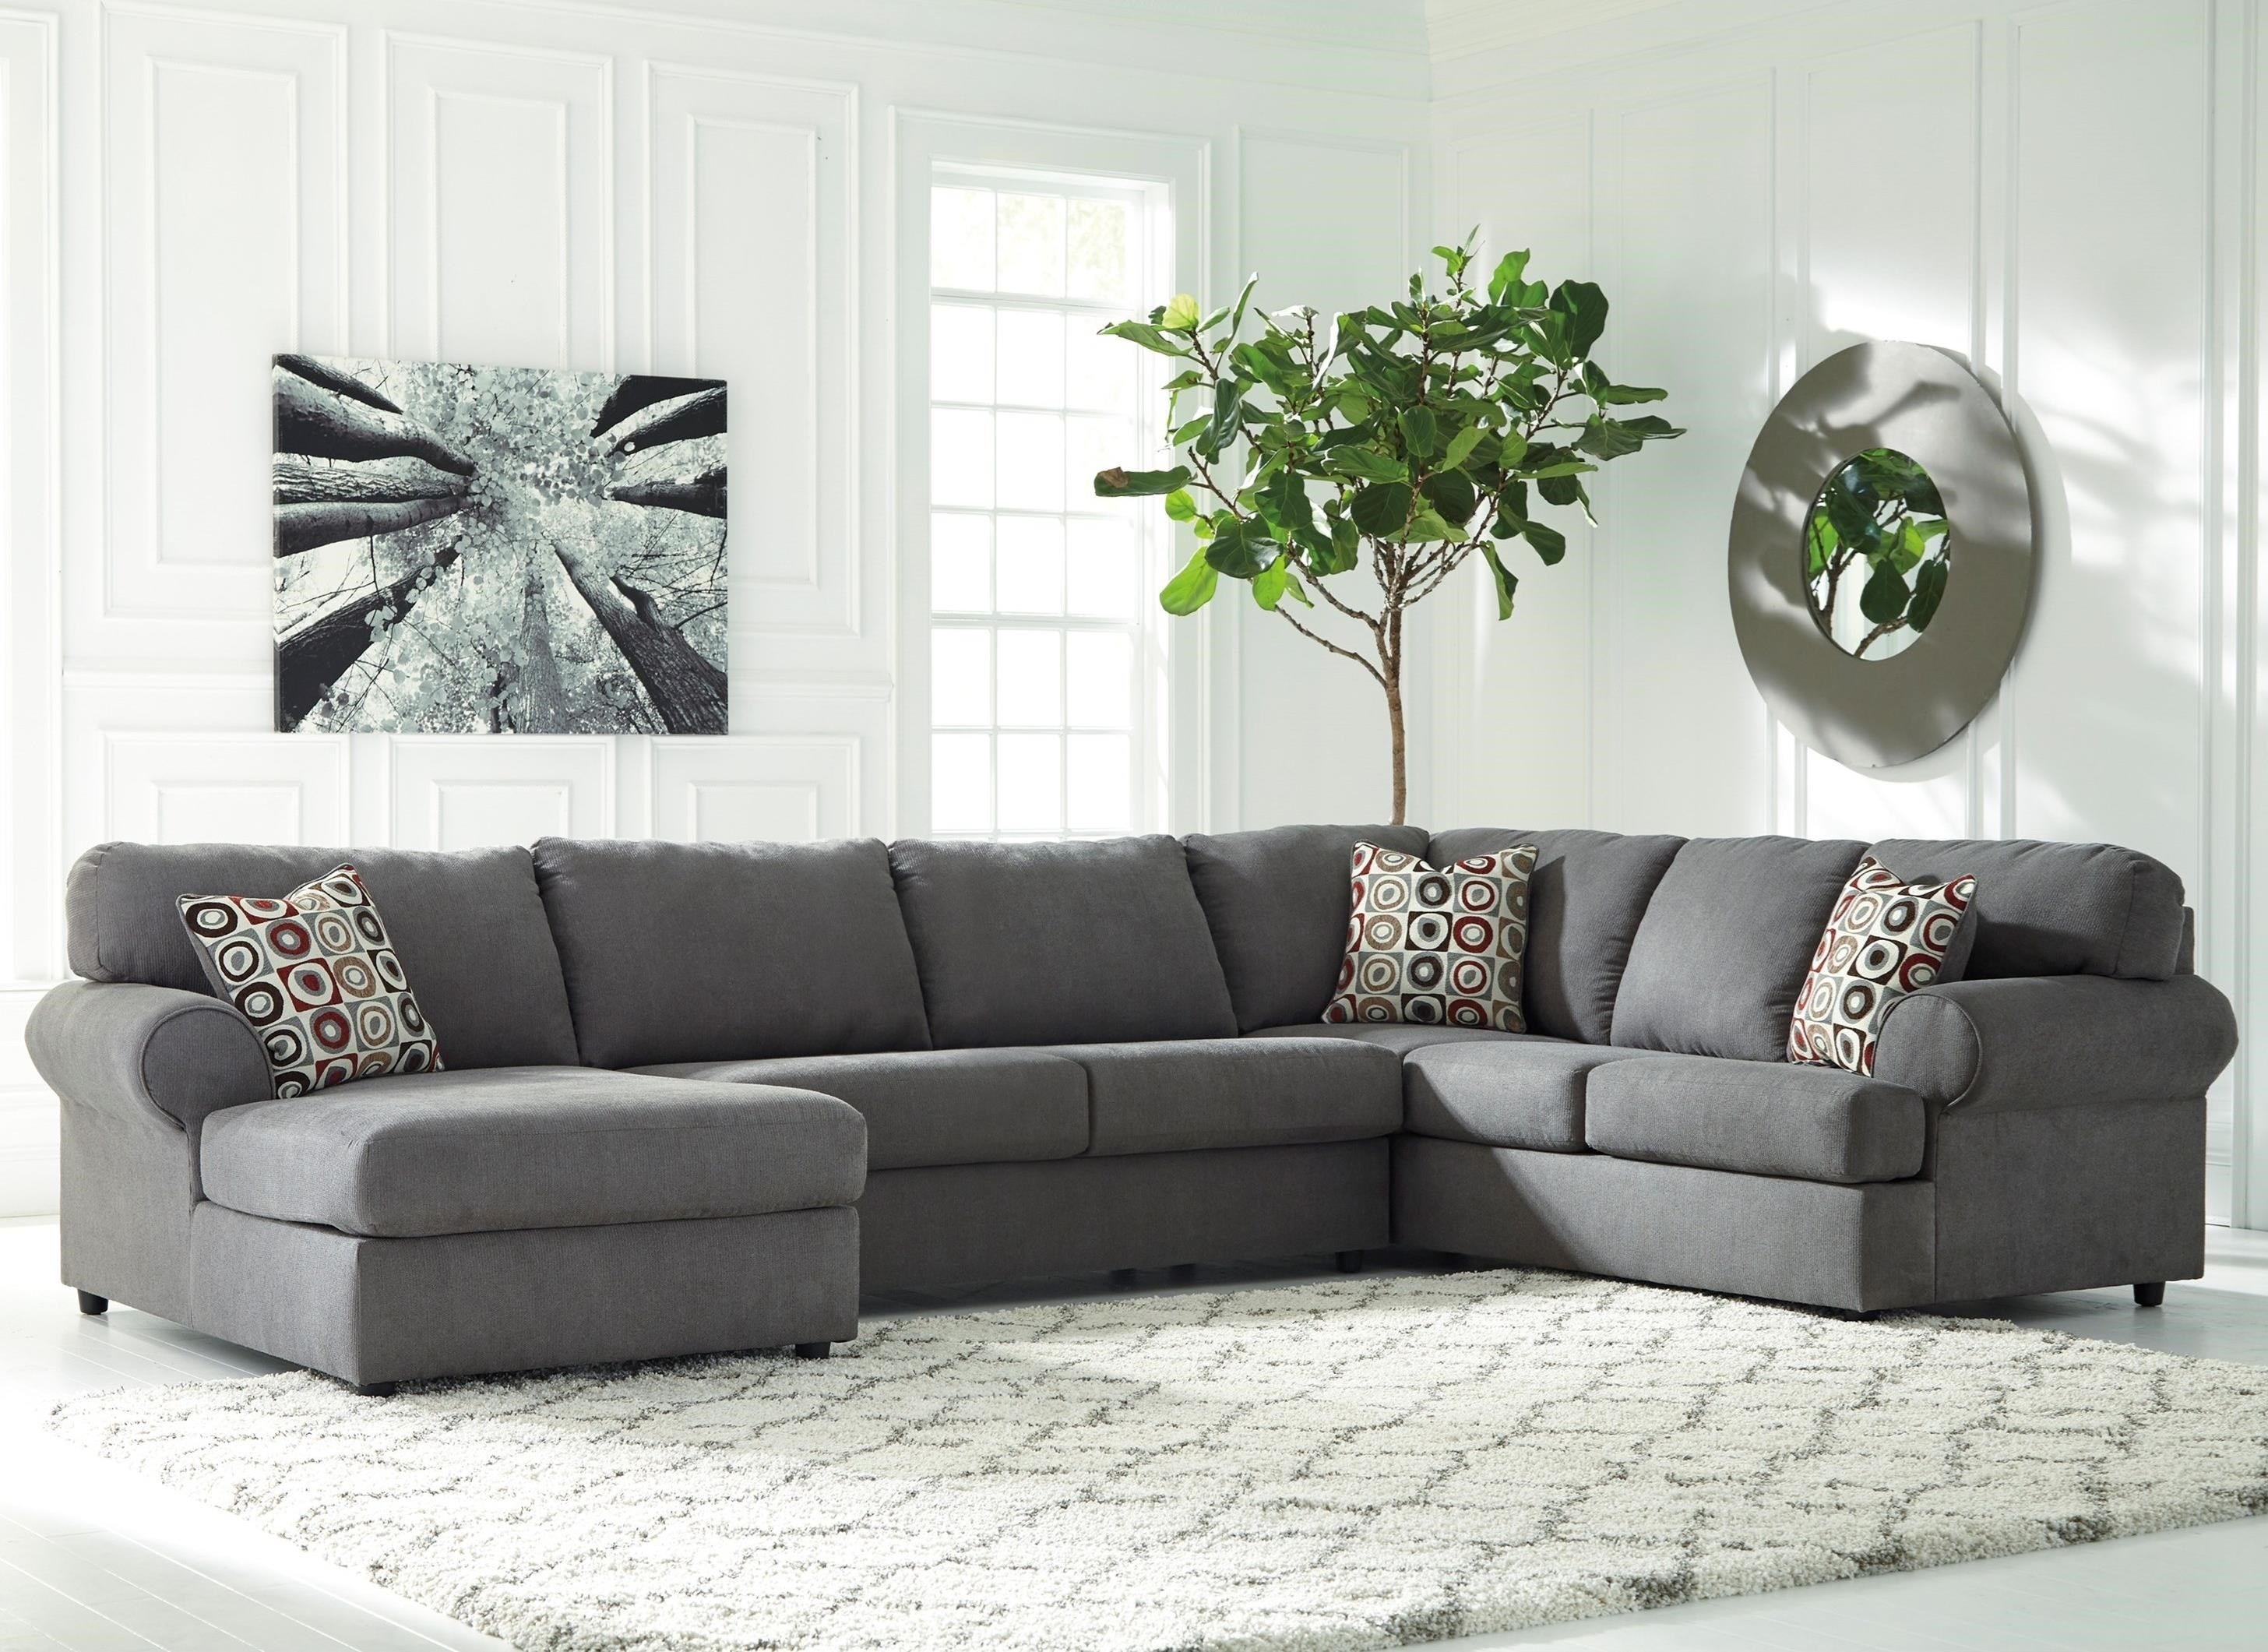 Jayceon 3 Piece Sectional With Left Chaiseashley (signature With Eau Claire Wi Sectional Sofas (View 2 of 10)